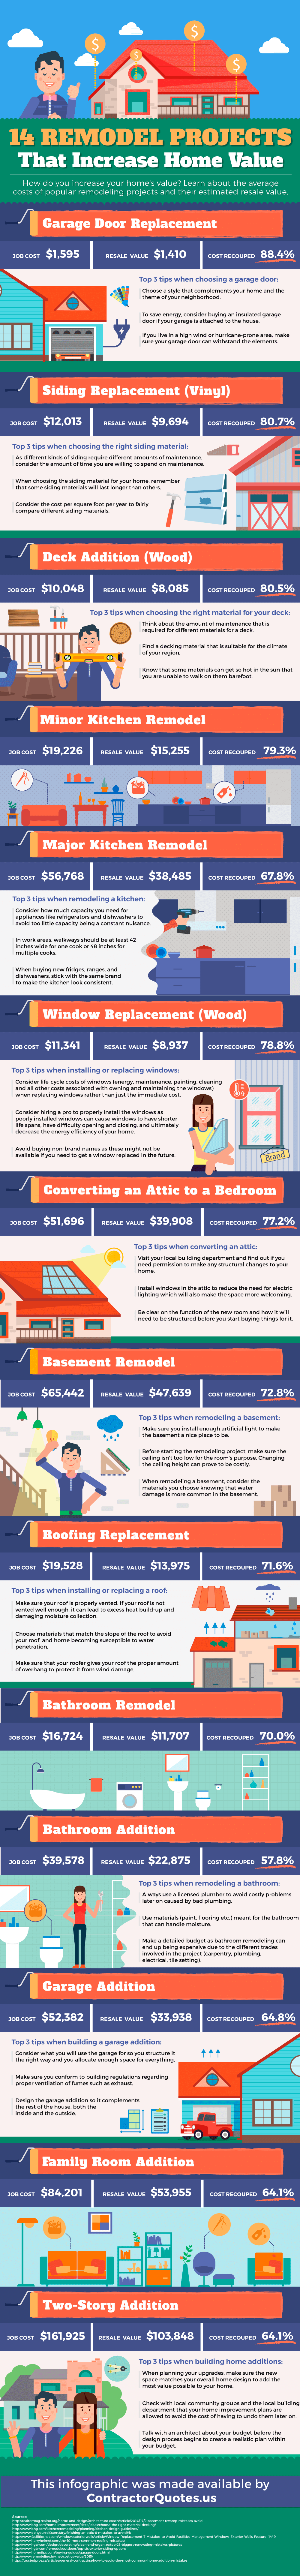 Remodeling that Increase your Home Value